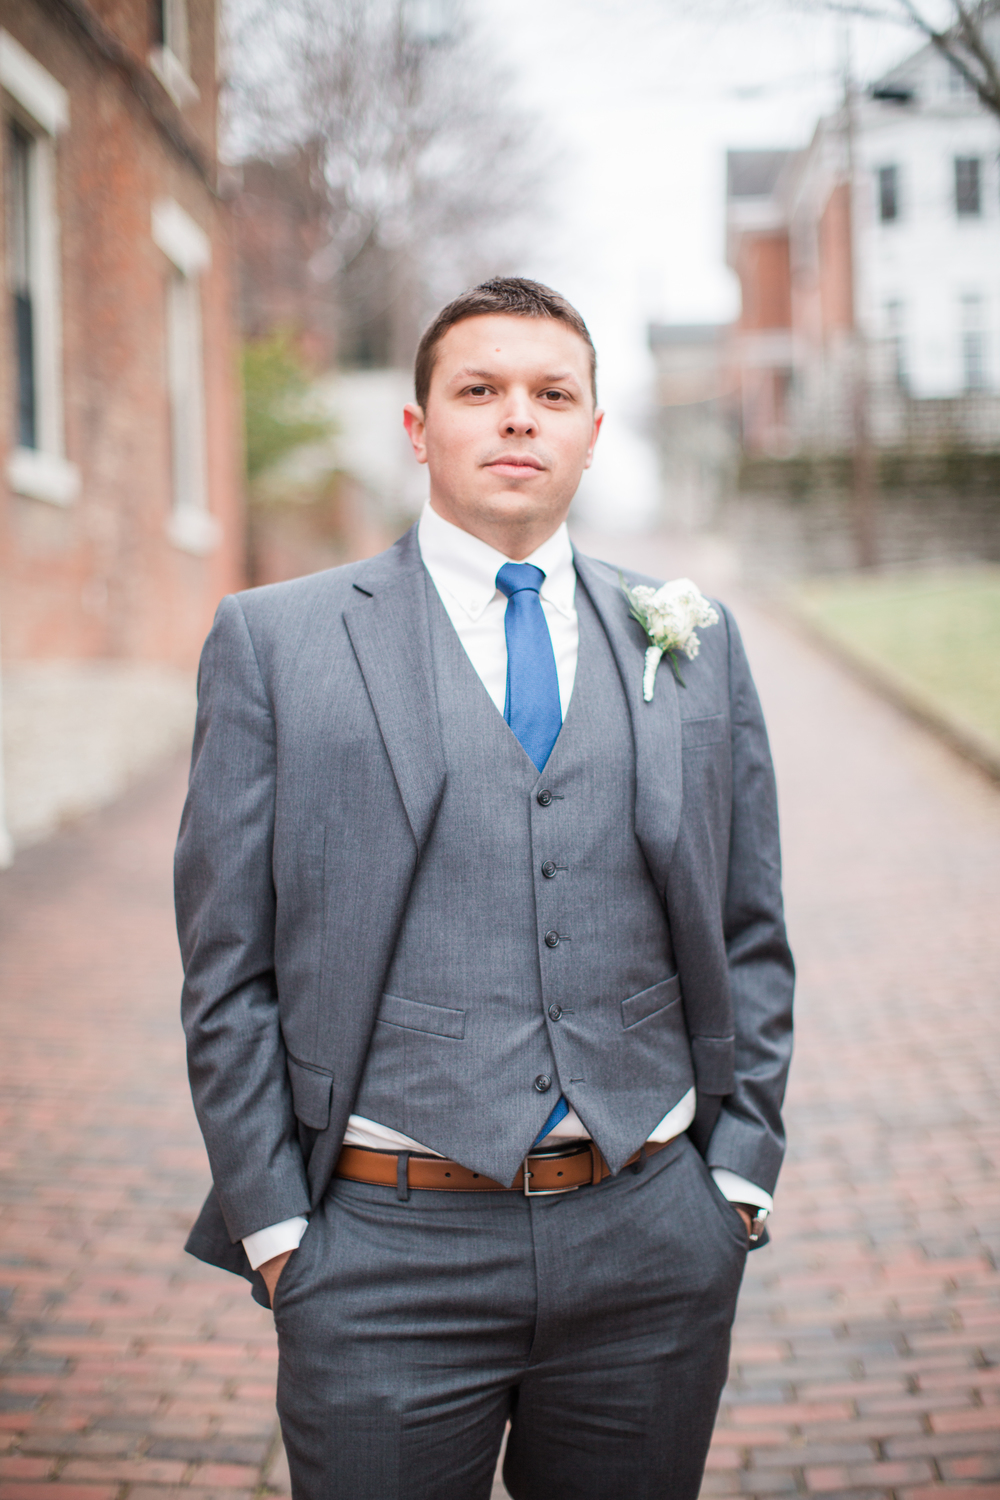 Groom at Riverside Drive in Covington, Kentucky